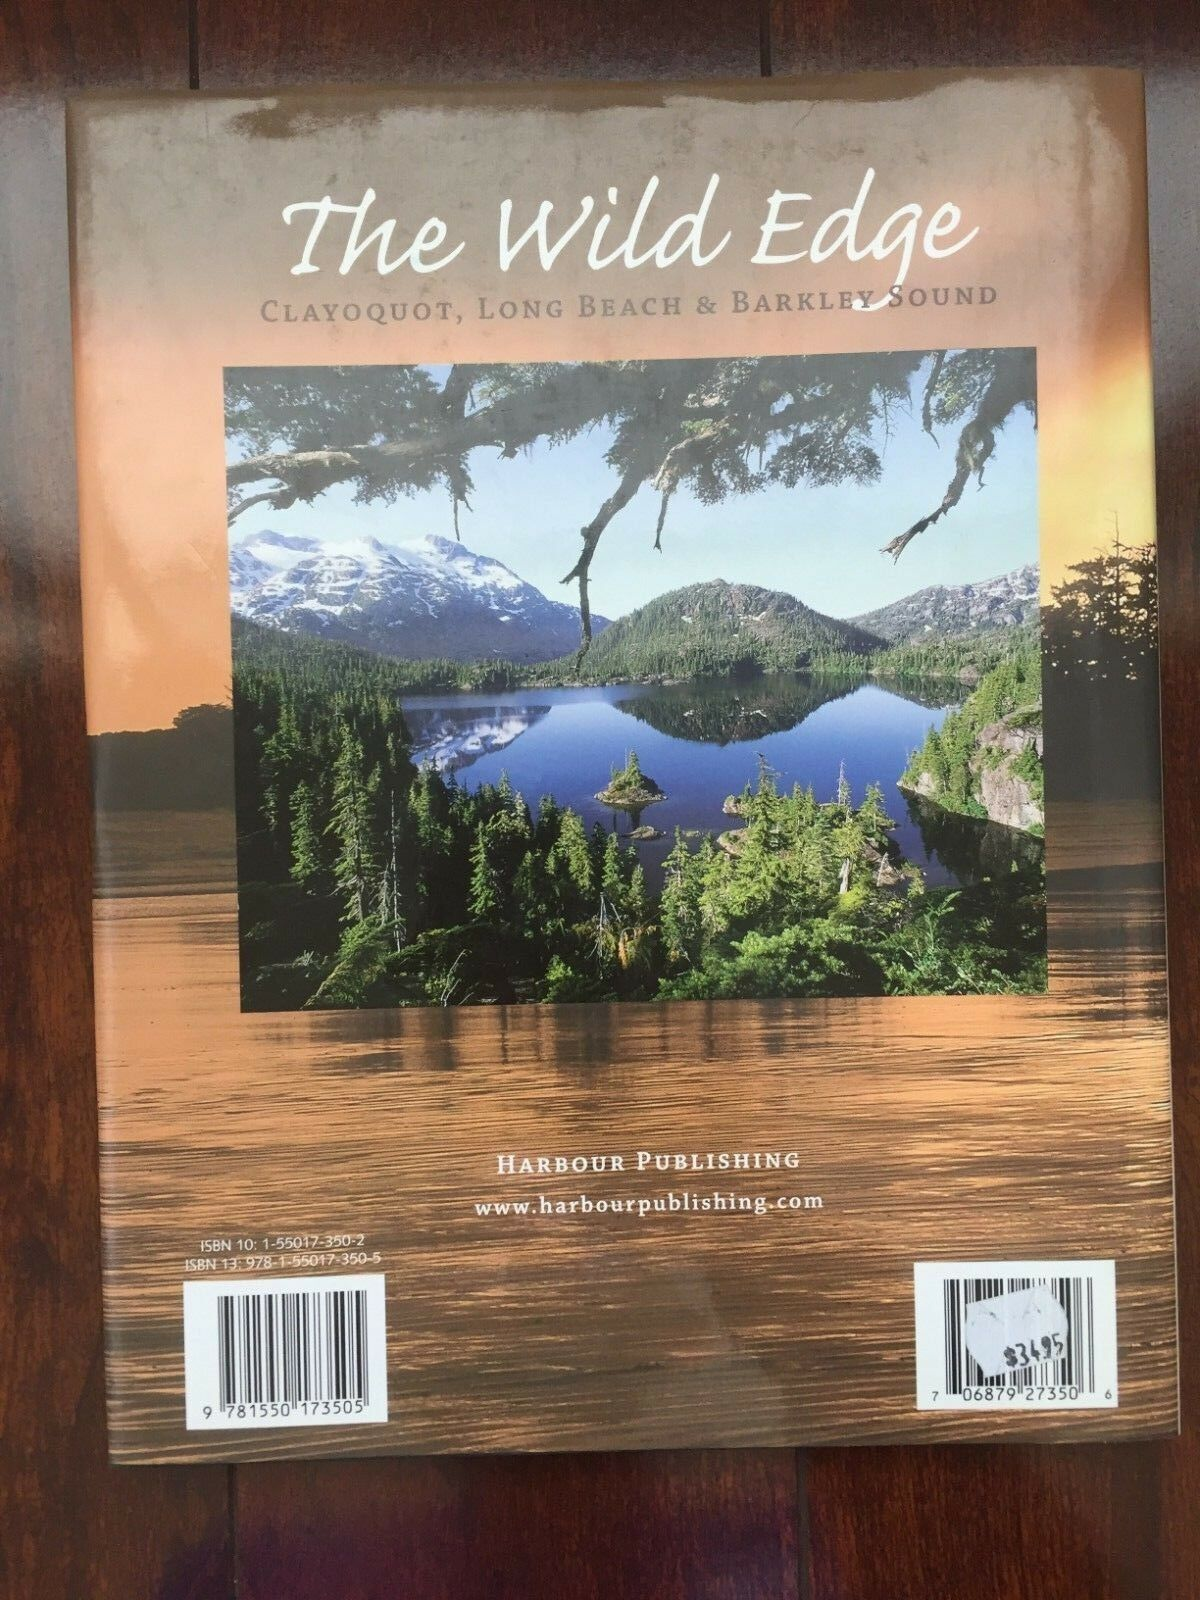 the wild edge clayoquot long beach and barkley sound